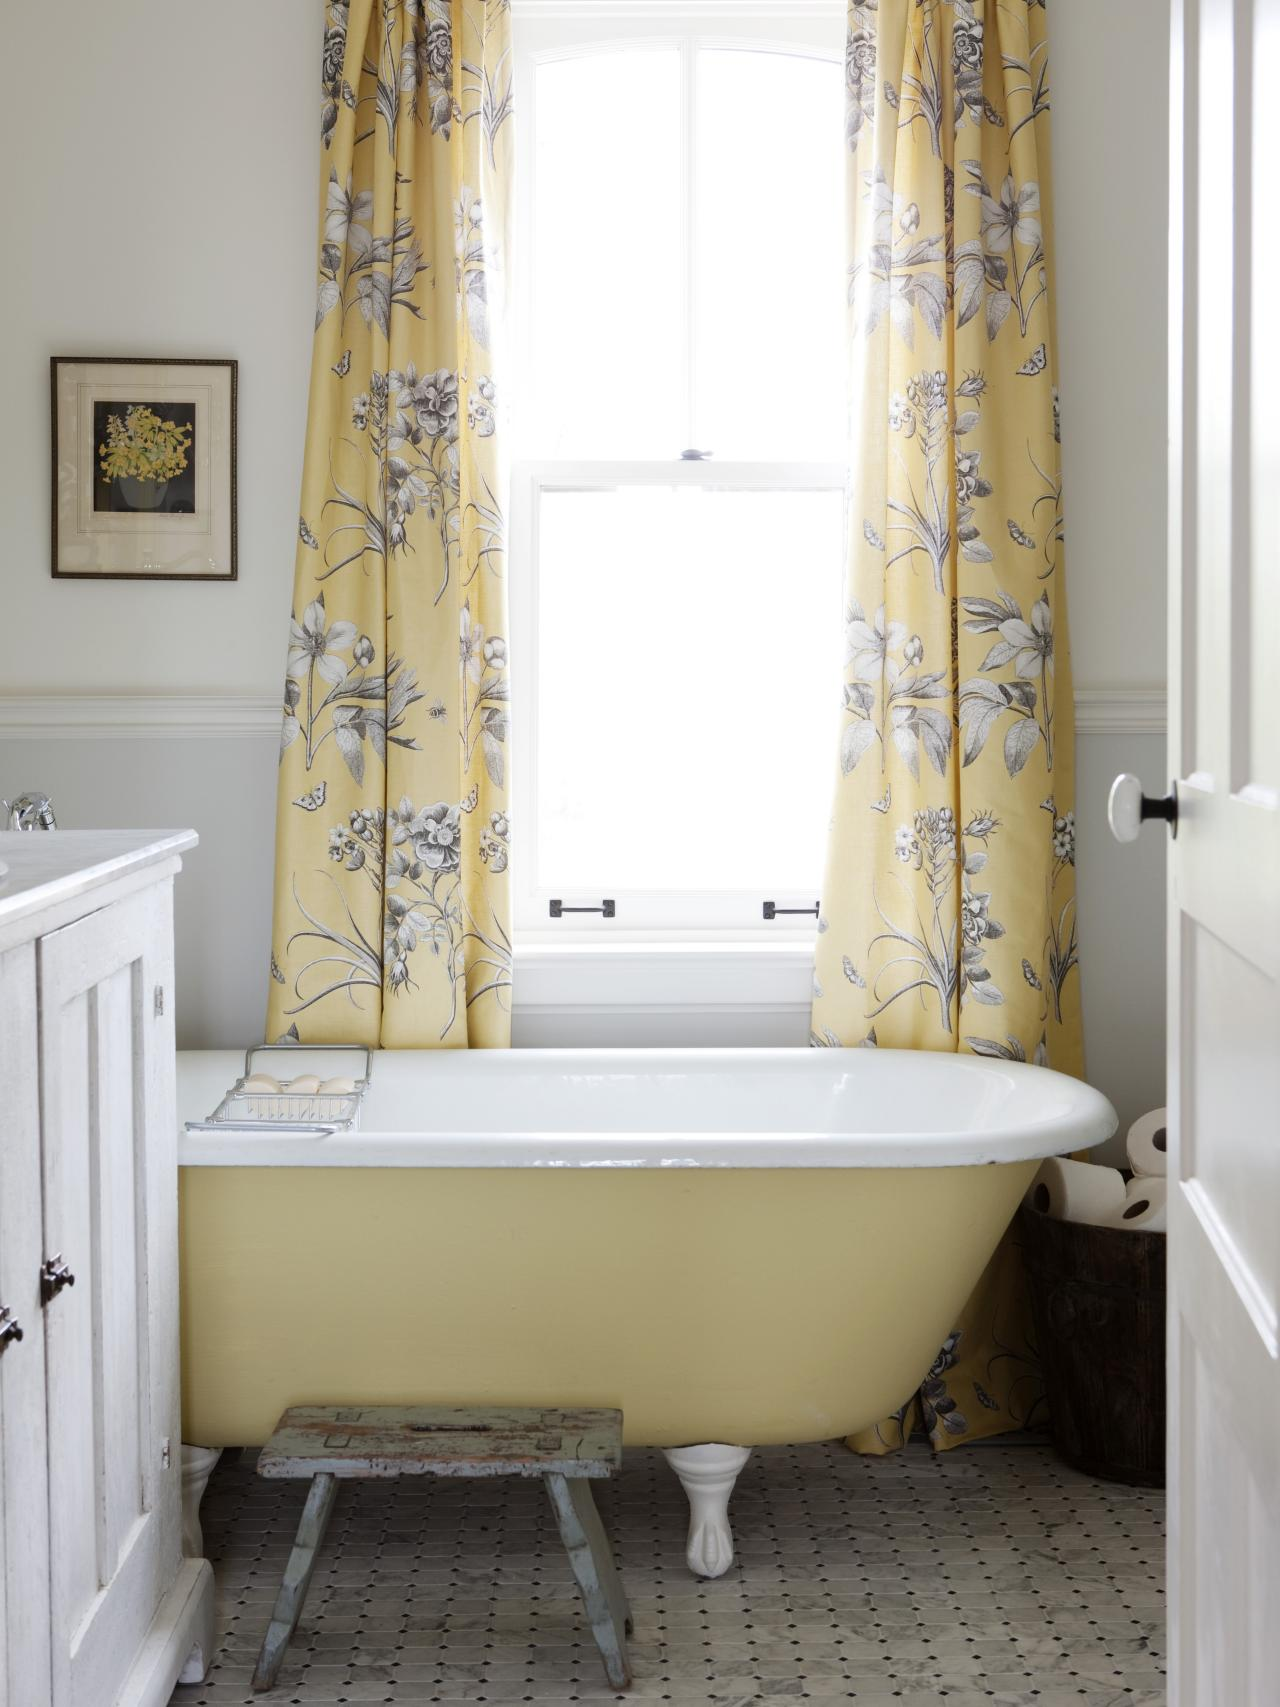 Country bathroom ideas for small bathrooms - Shabby Chic Bathroom Designs